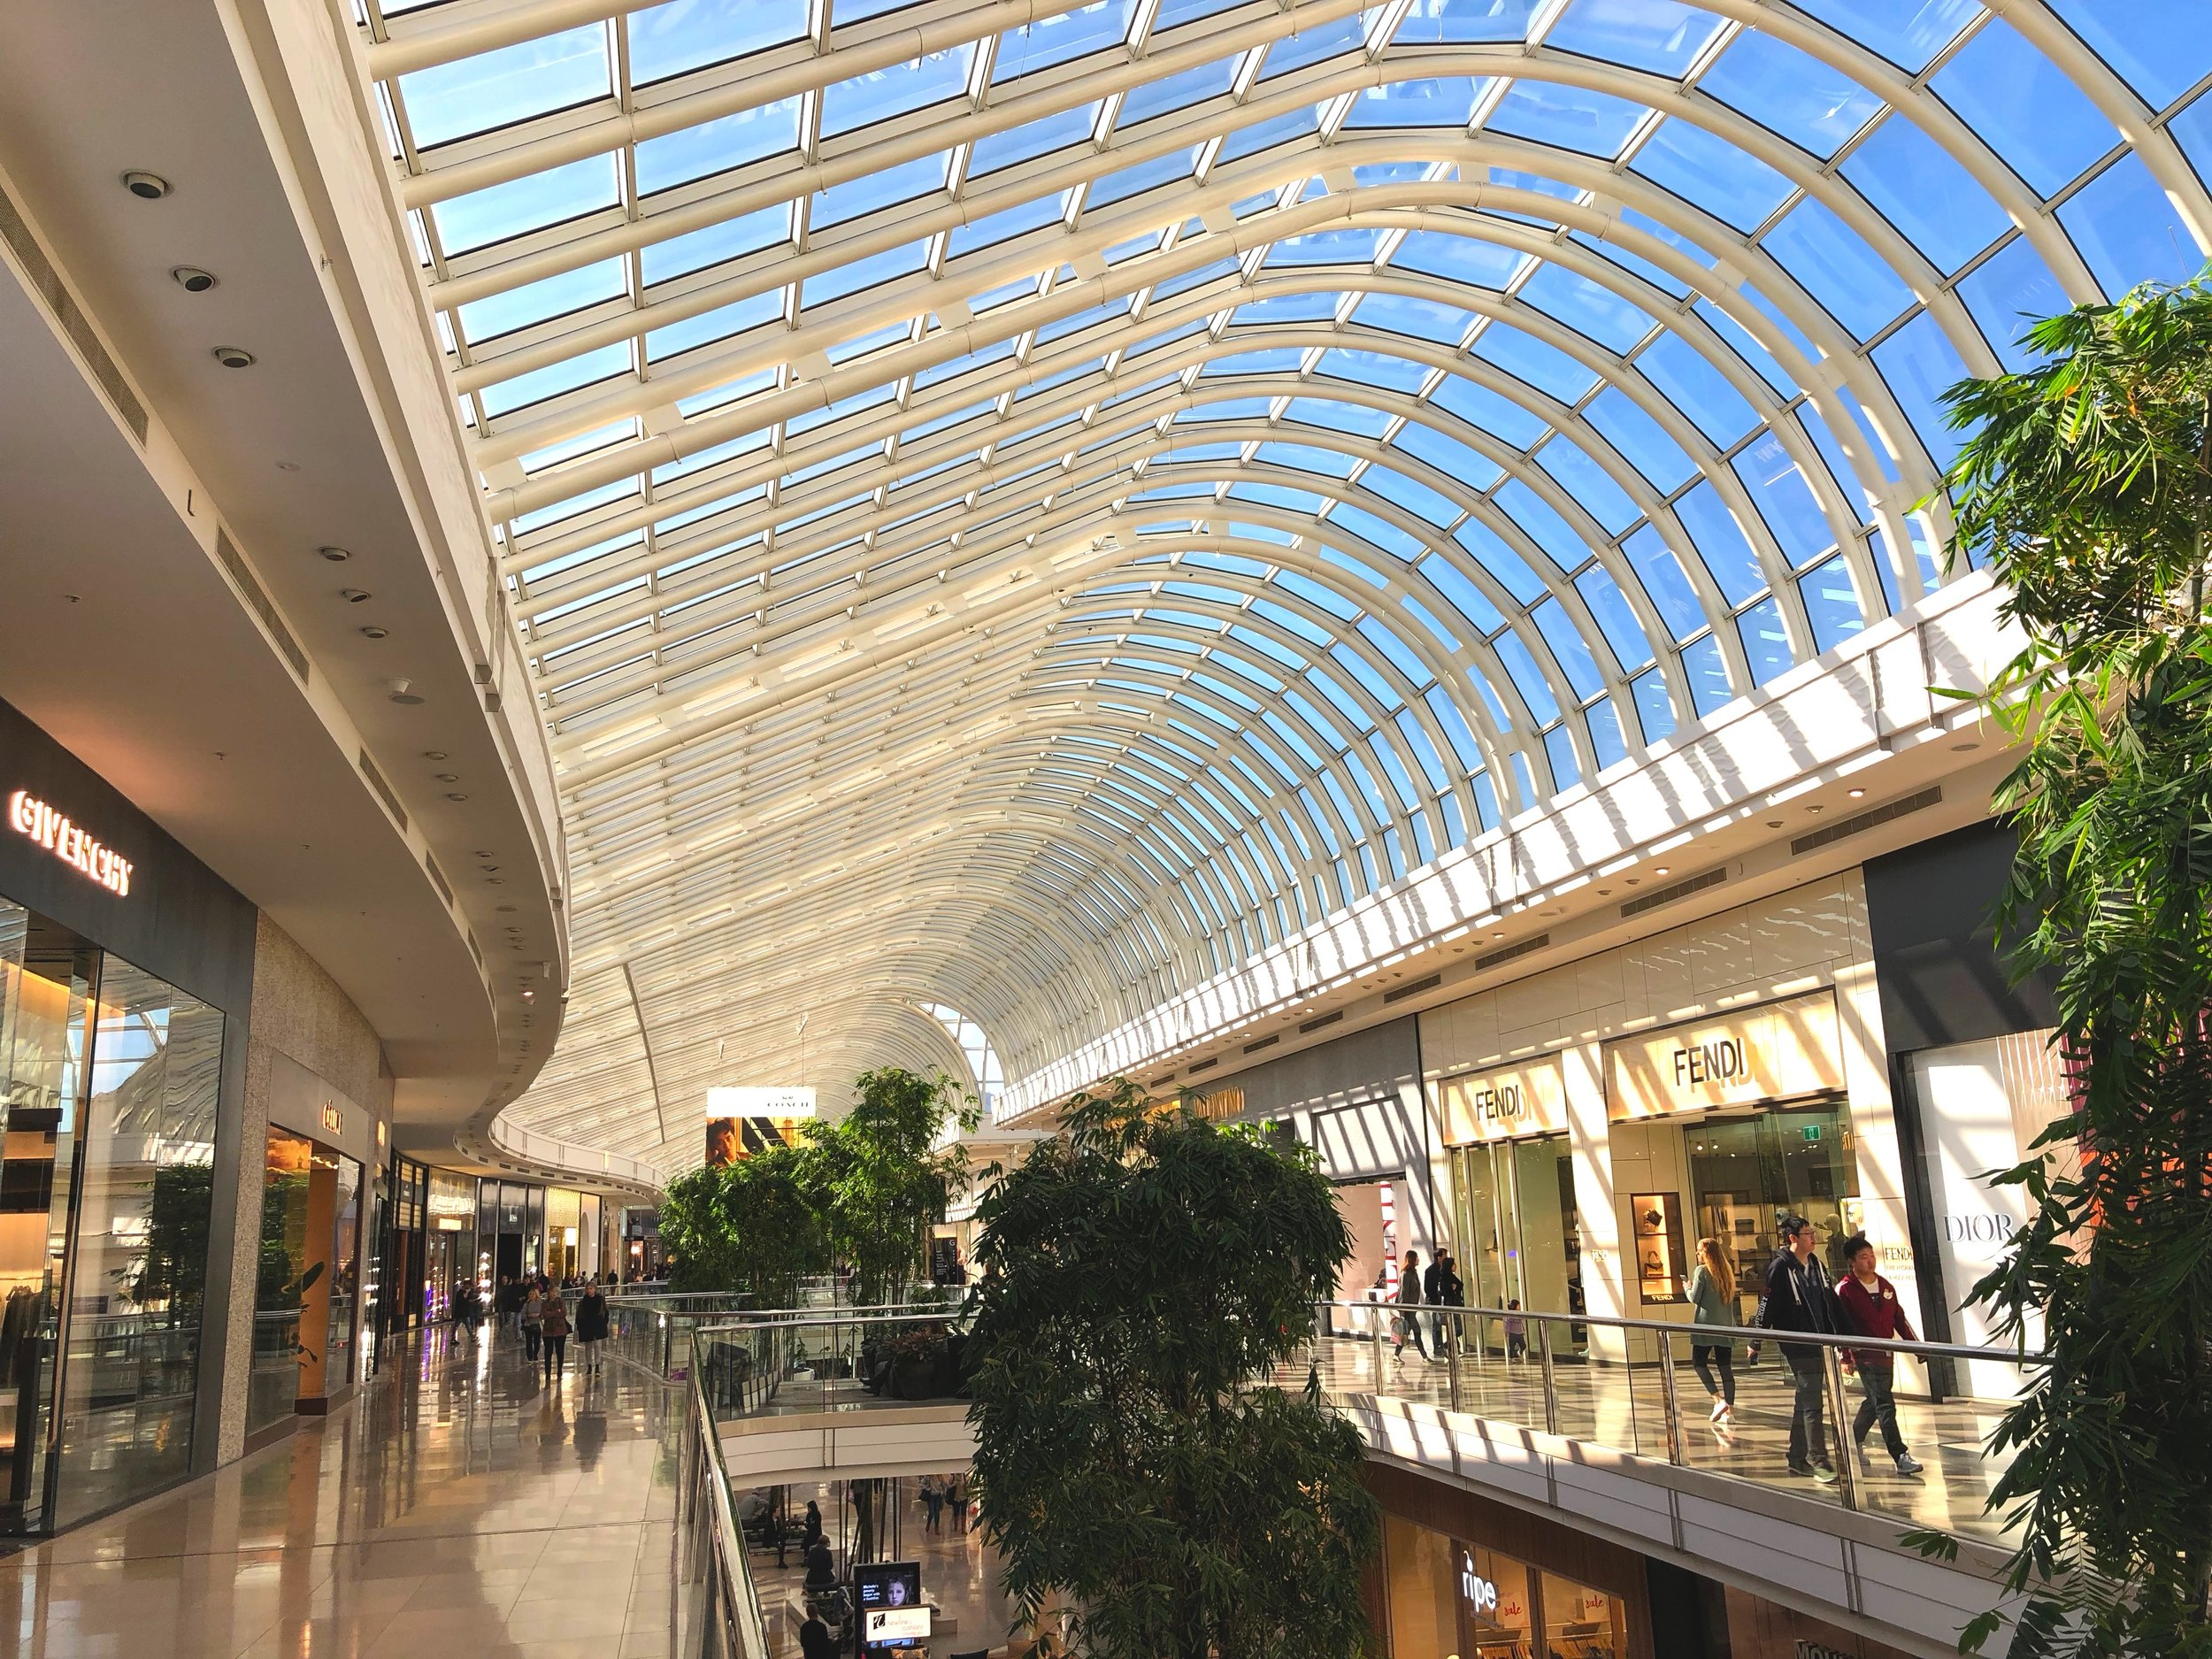 CHADSTONE SHOPPING CENTRE - Rock Solid Earth was part of the site investigation team in assessing the strength of the founding material for the large iconic shopping complex. Extensive schedule of testing was undertaken to form quality assurance of the project.